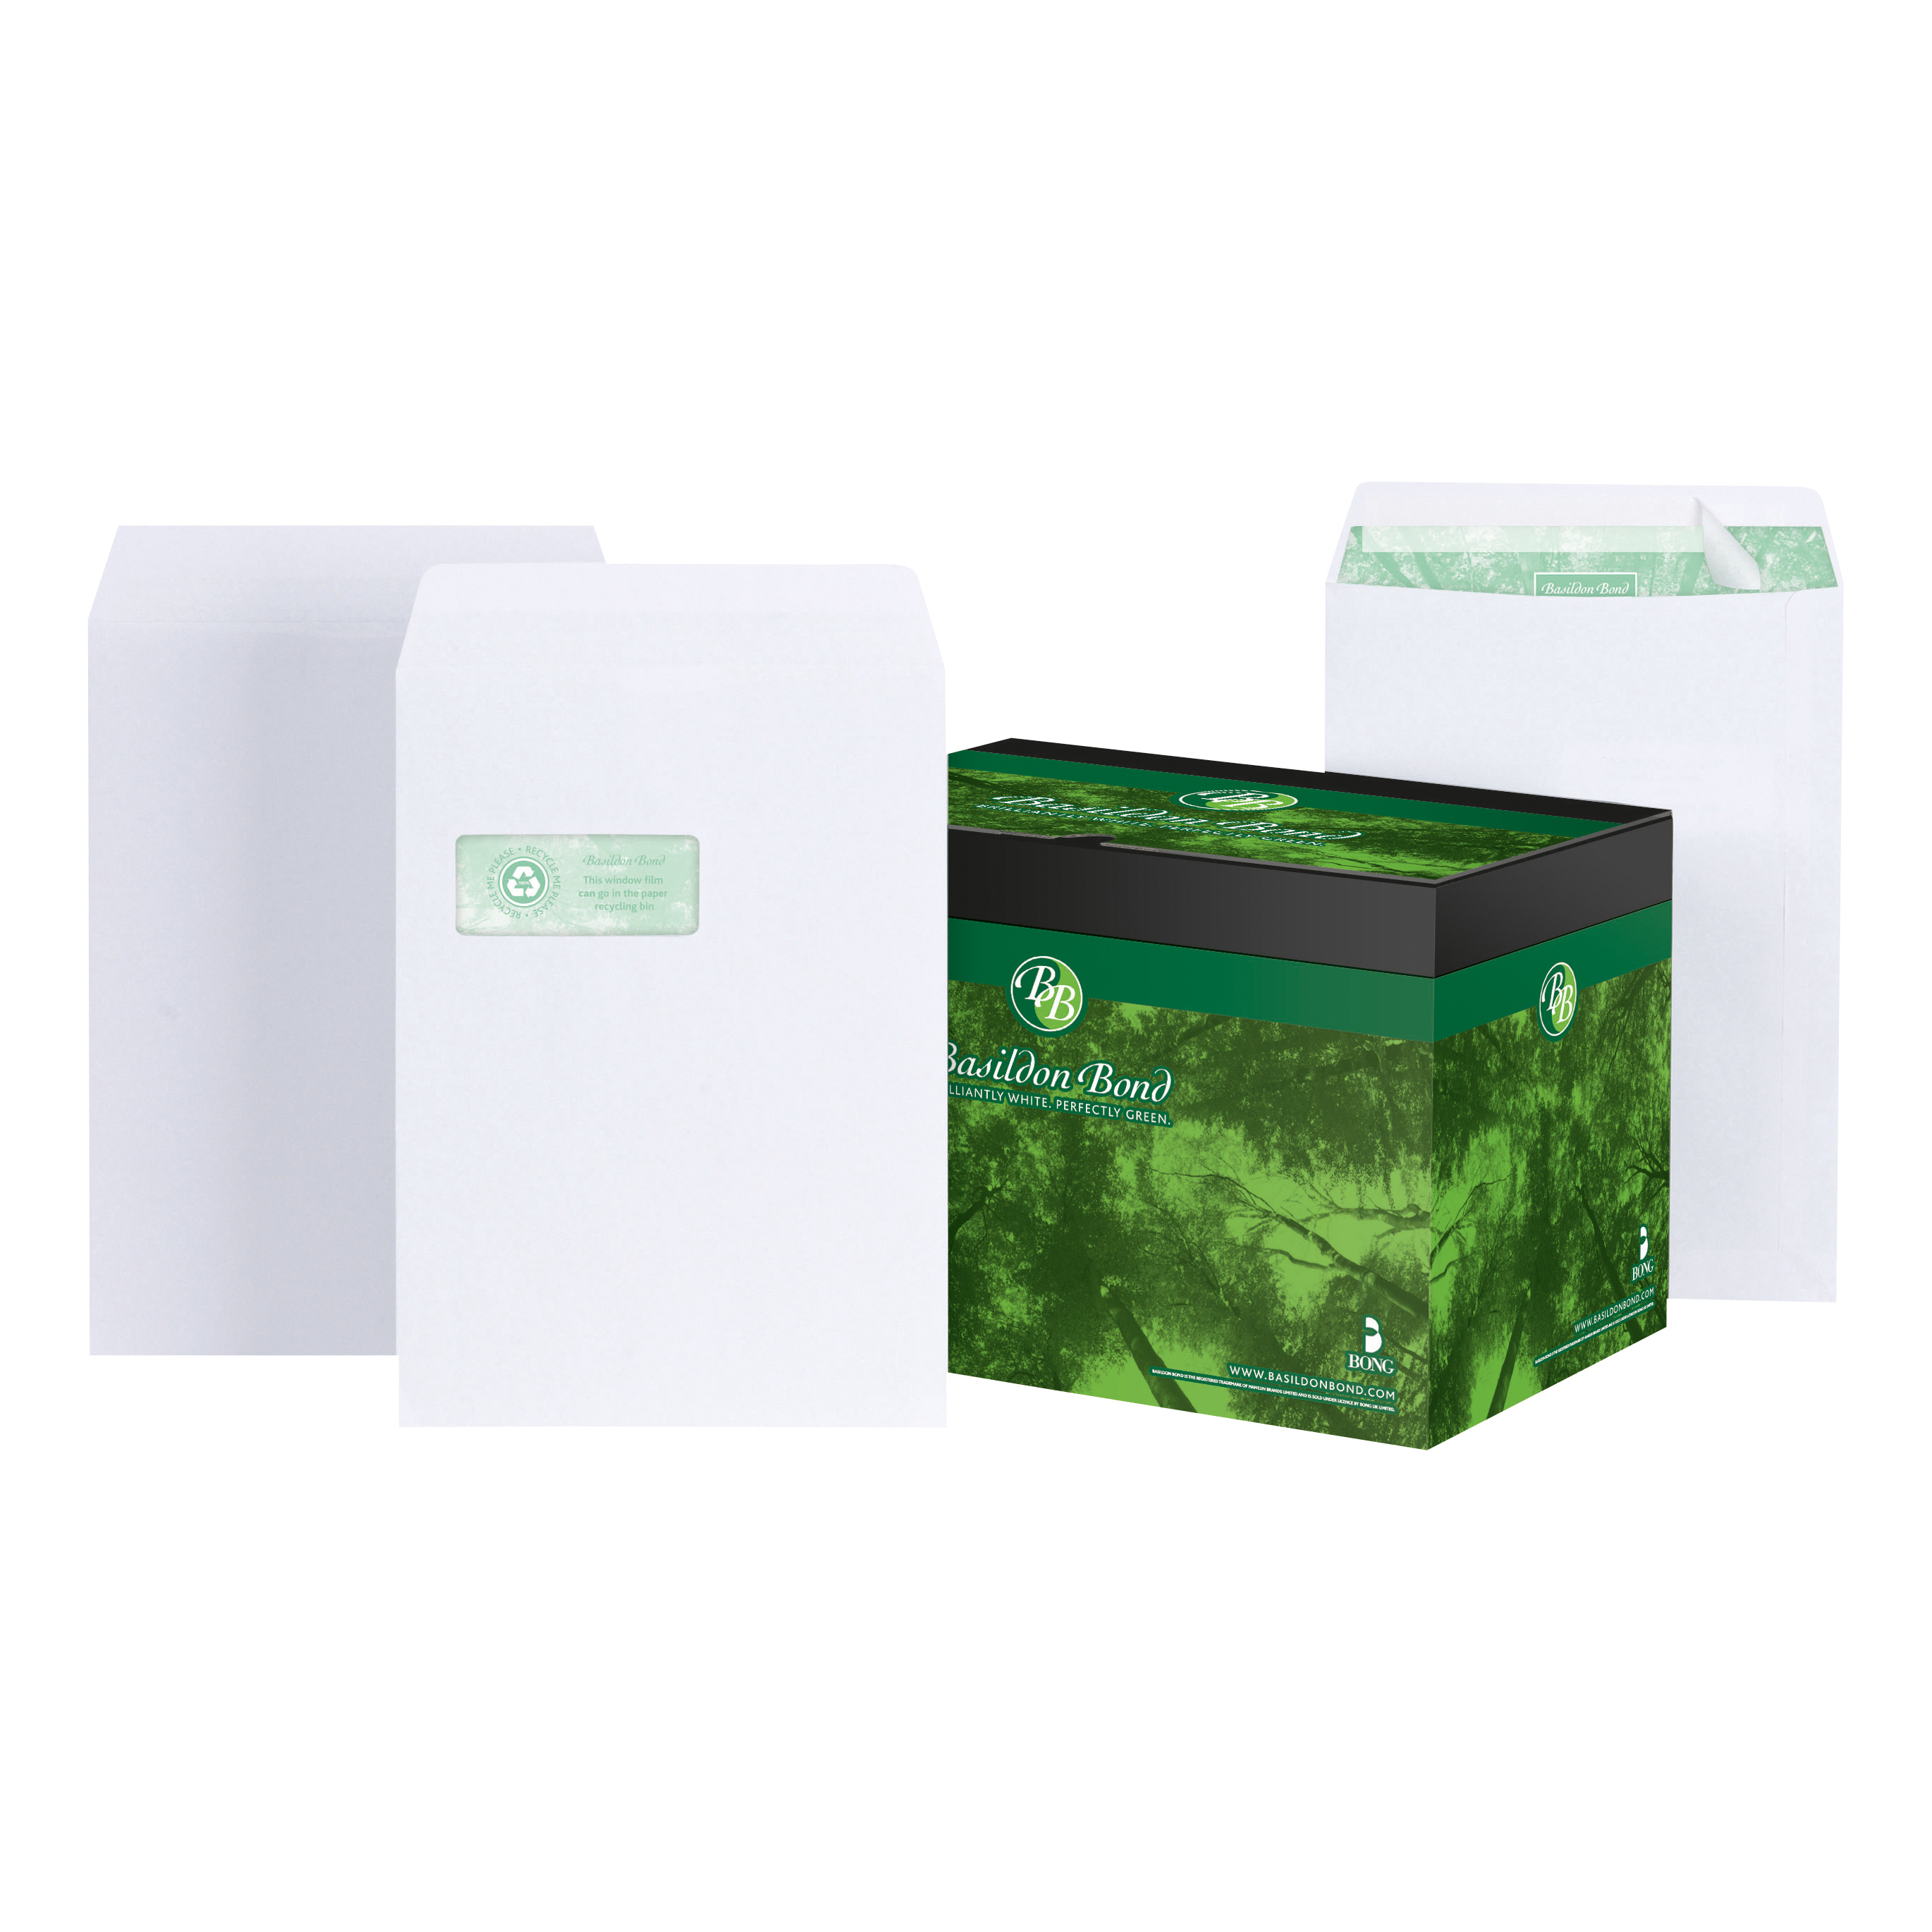 C4 Basildon Bond Envelopes FSC Recycled Pocket Peel &Seal 120gsm C4 White Ref M80120 Pack 250